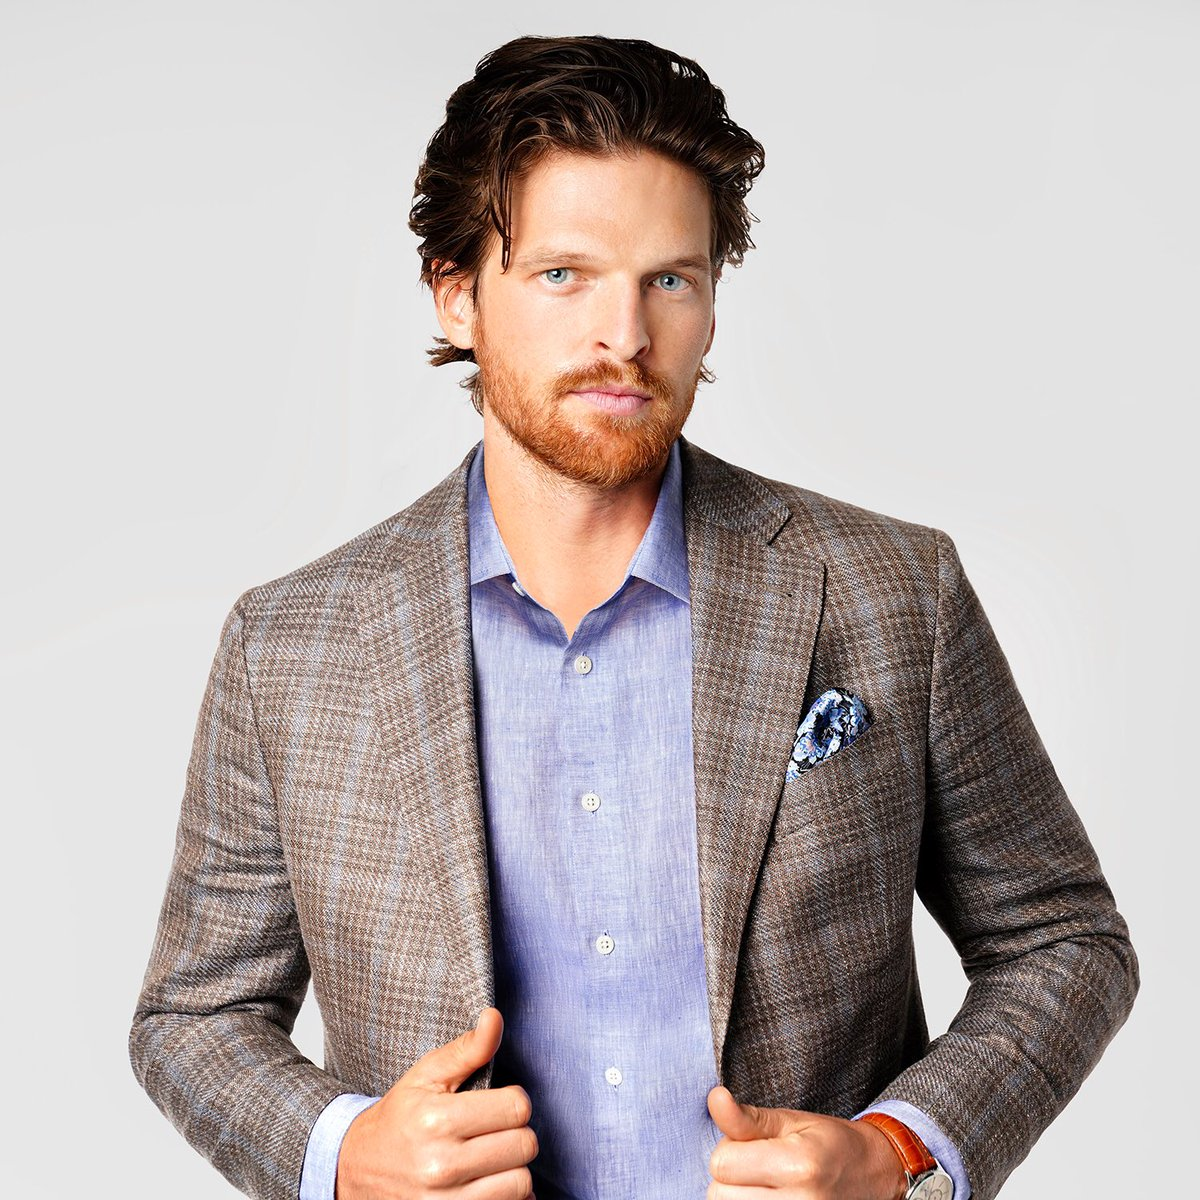 Quality Meets Style | This #JosephAbboud sport coat is crafted from fine Italian fabric with a plaid pattern that provides subtle texture and depth. Get this must-have layer from @menswearhouse https://t.co/DSDpijLRNt